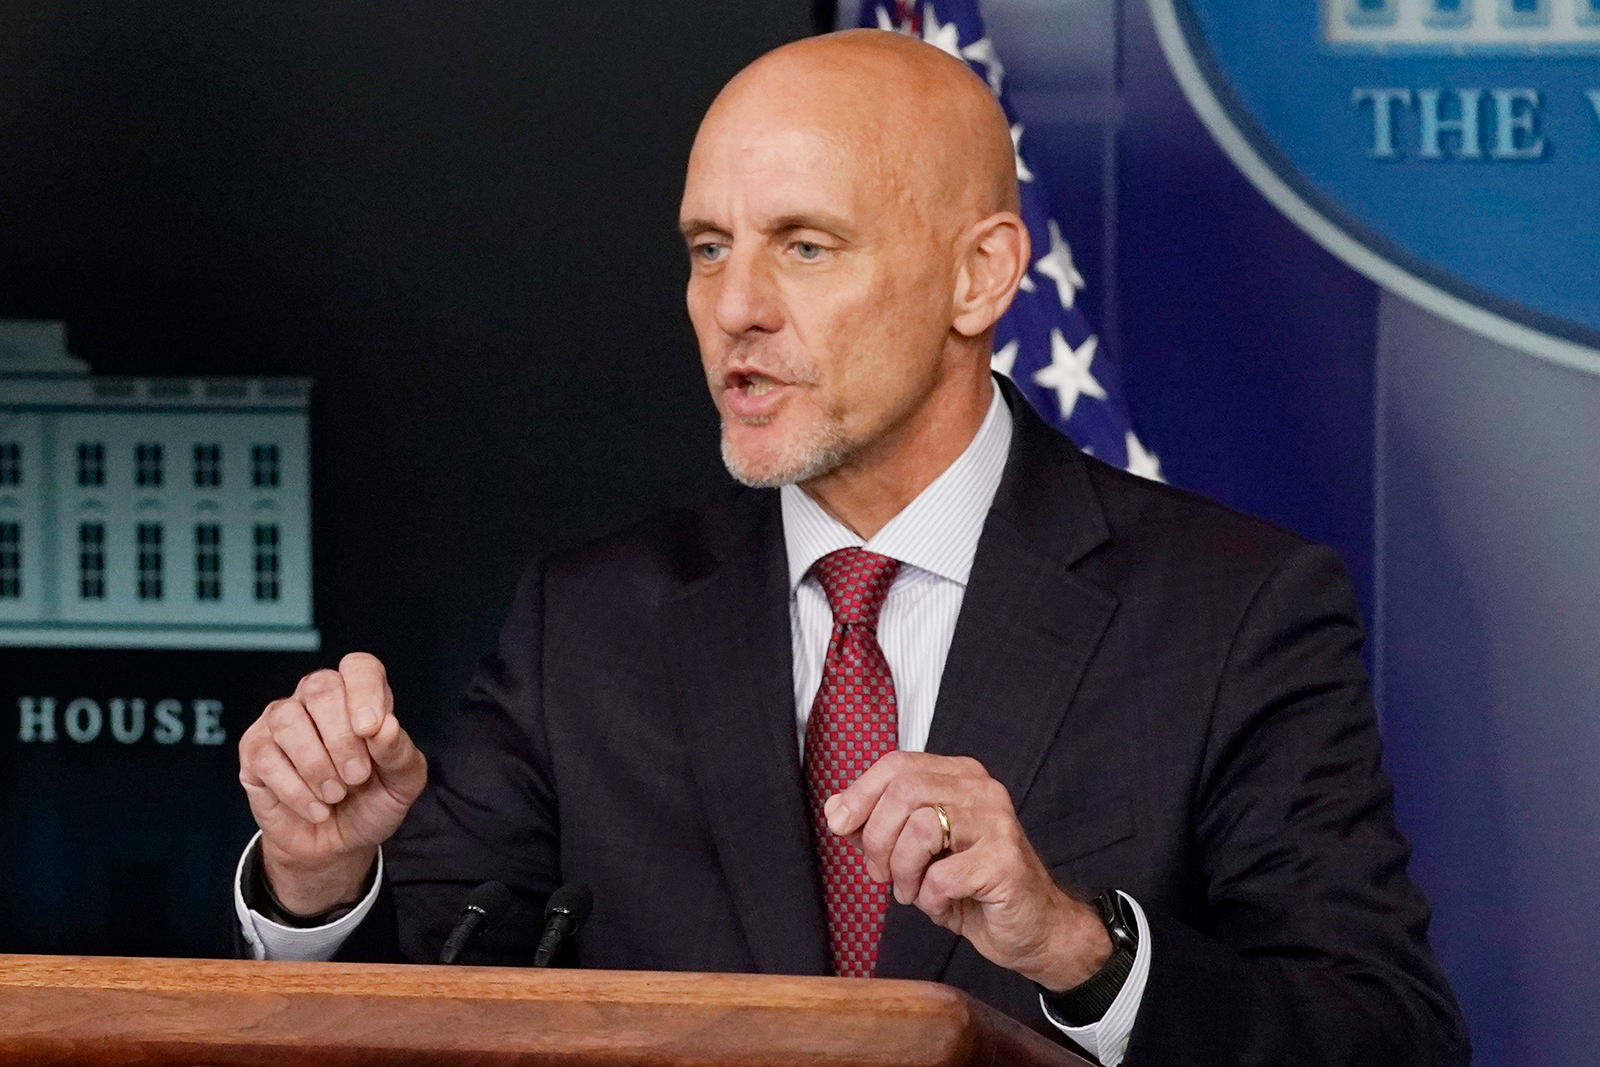 Dr. Stephen Hahn, commissioner of the US Food and Drug Administration, speaks during a media briefing at the White House on Sunday, August 23.